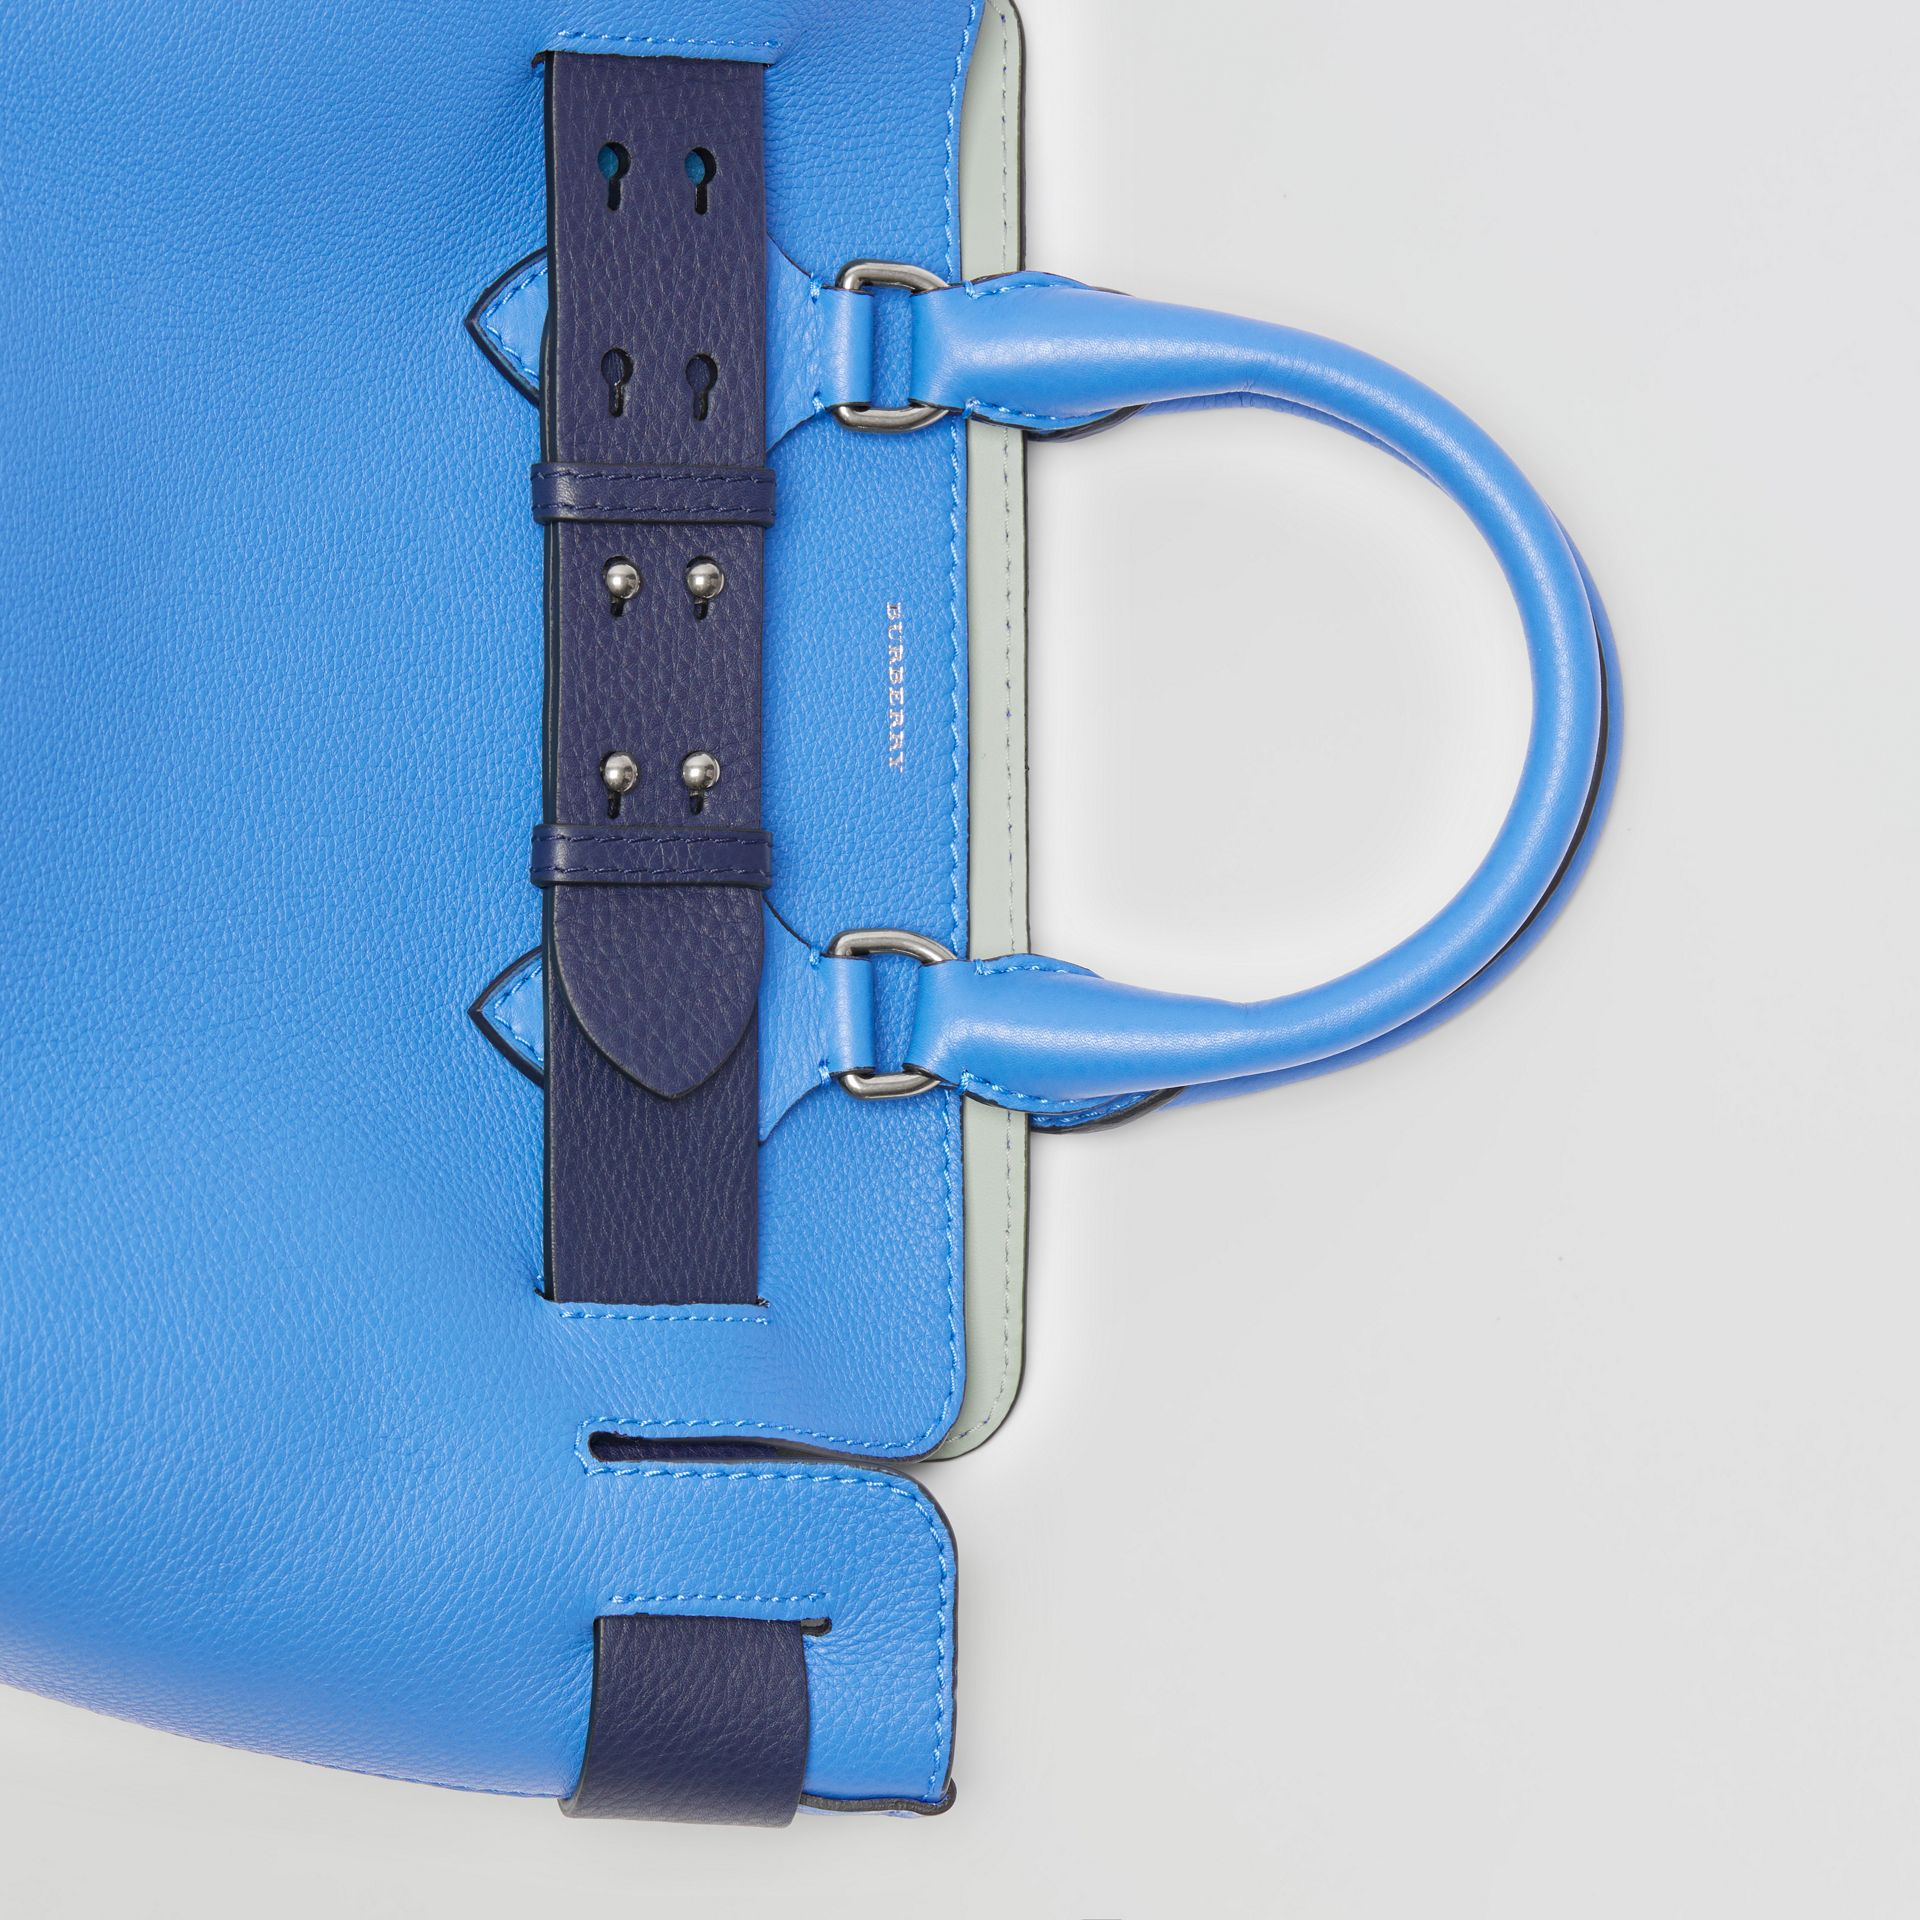 Borsa The Belt piccola in pelle (Blu Ortensia) - Donna | Burberry - immagine della galleria 1